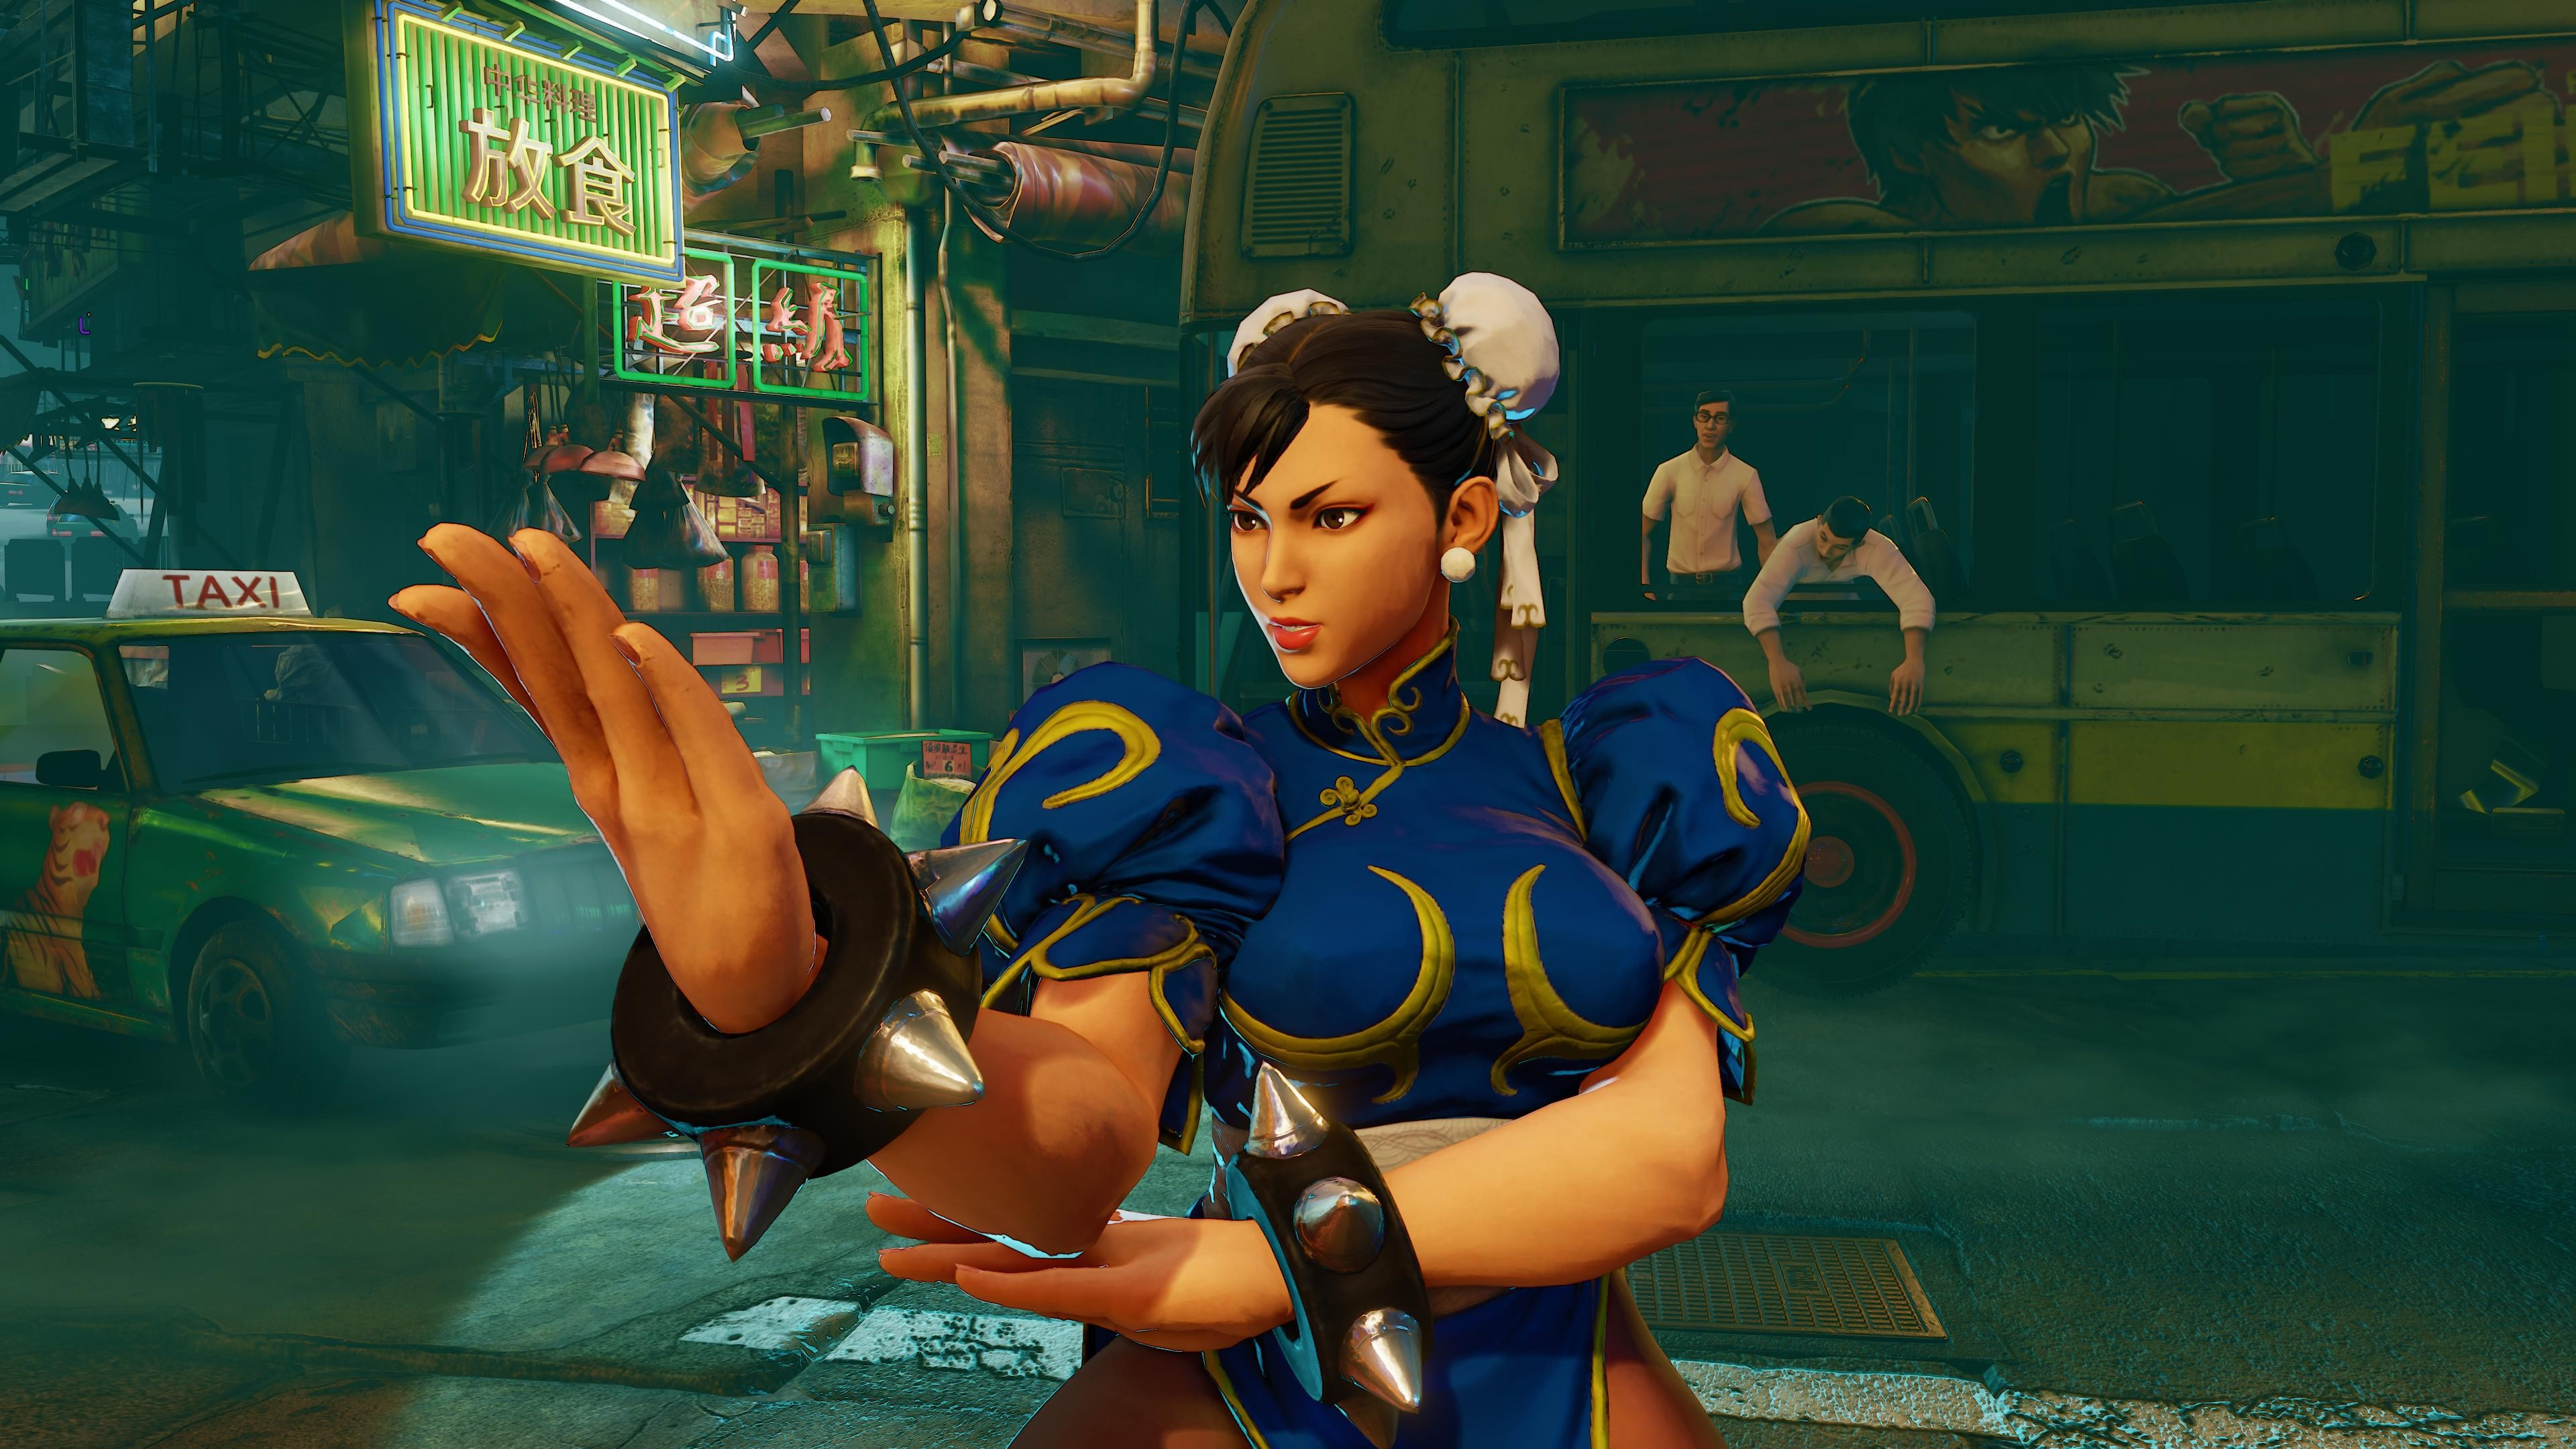 Girl And Boy Shadow Wallpaper Wallpaper Street Fighter 5 Chun Li Best Games Fantasy